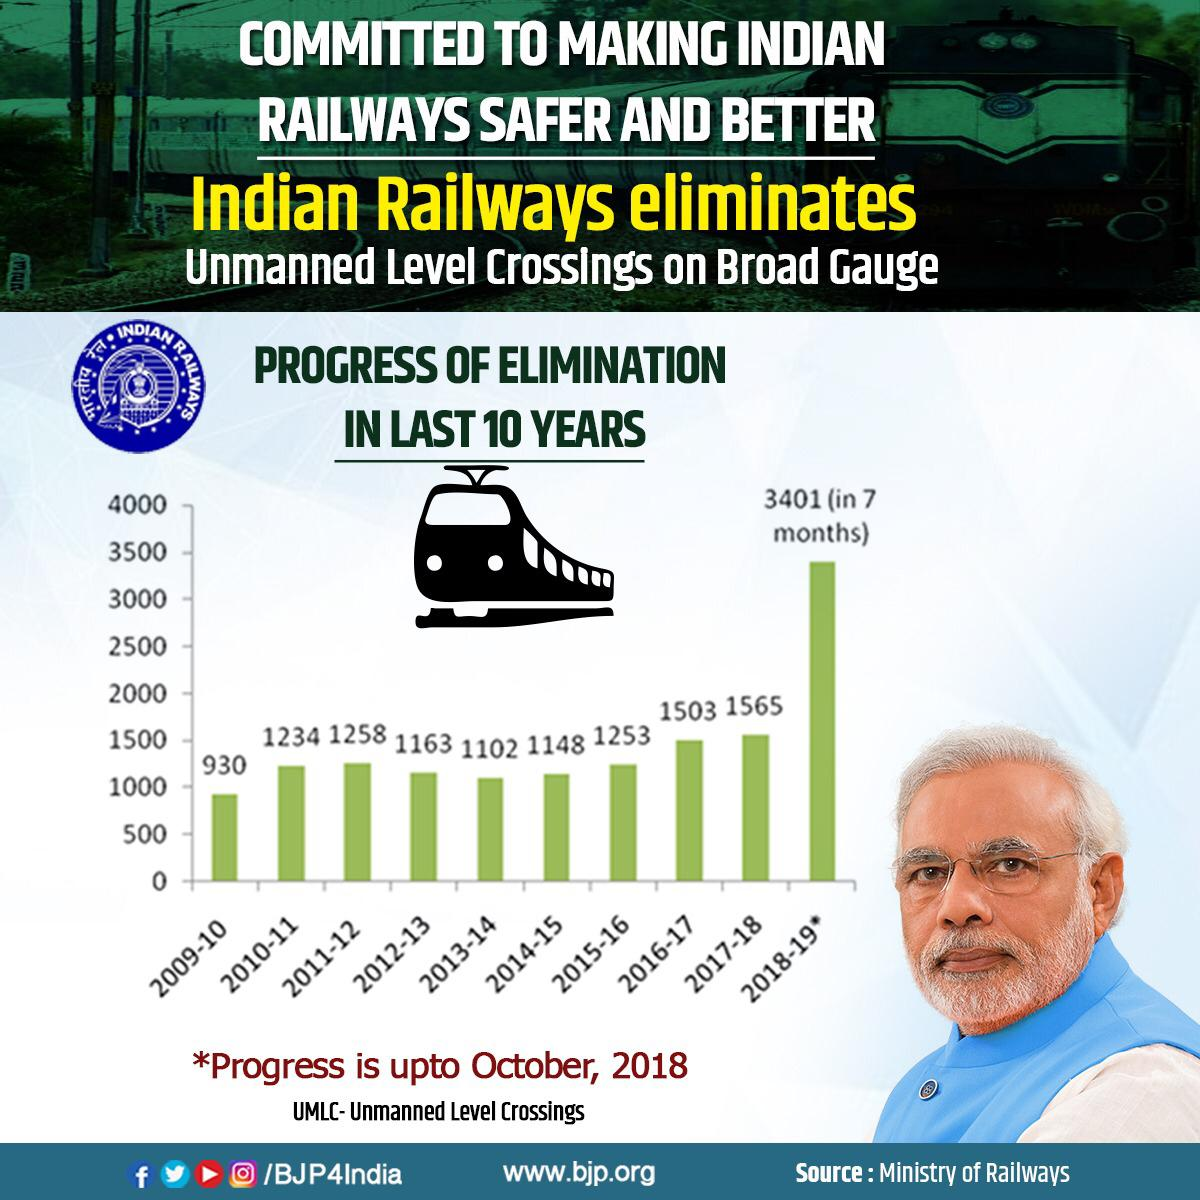 There has been unprecedented progress in elimination of unmanned level crossings (UMLC) in the last 7 months. From April 2018 till October 2018, around 3,401 UMLCs have been removed which is around the combined numbers of the last three years of UPA government in the centre.